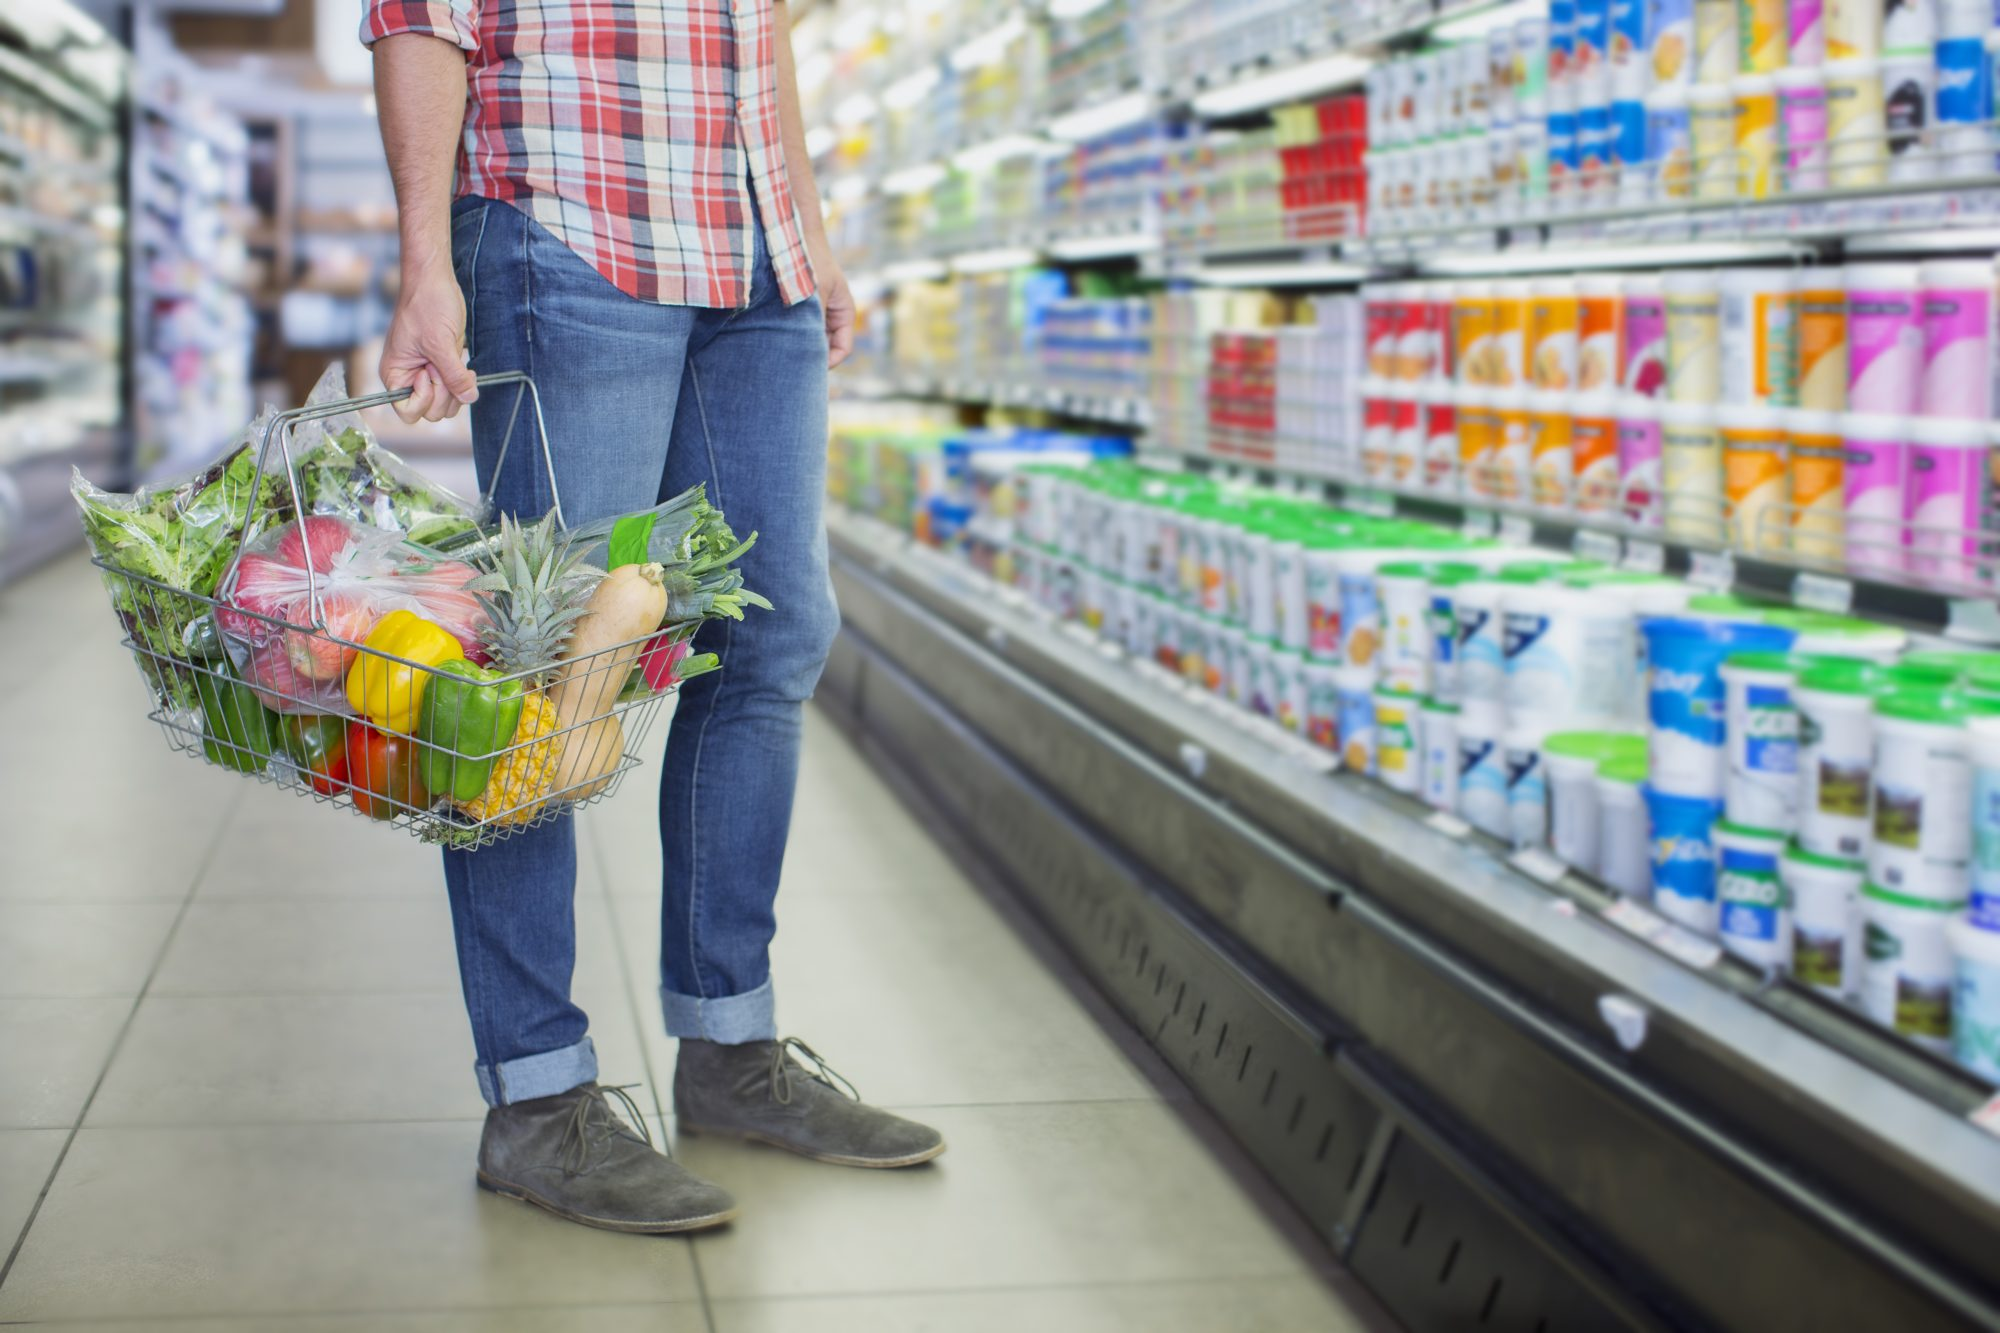 Owning a Home Near This Grocery Store Could Increase the Value of Your Home